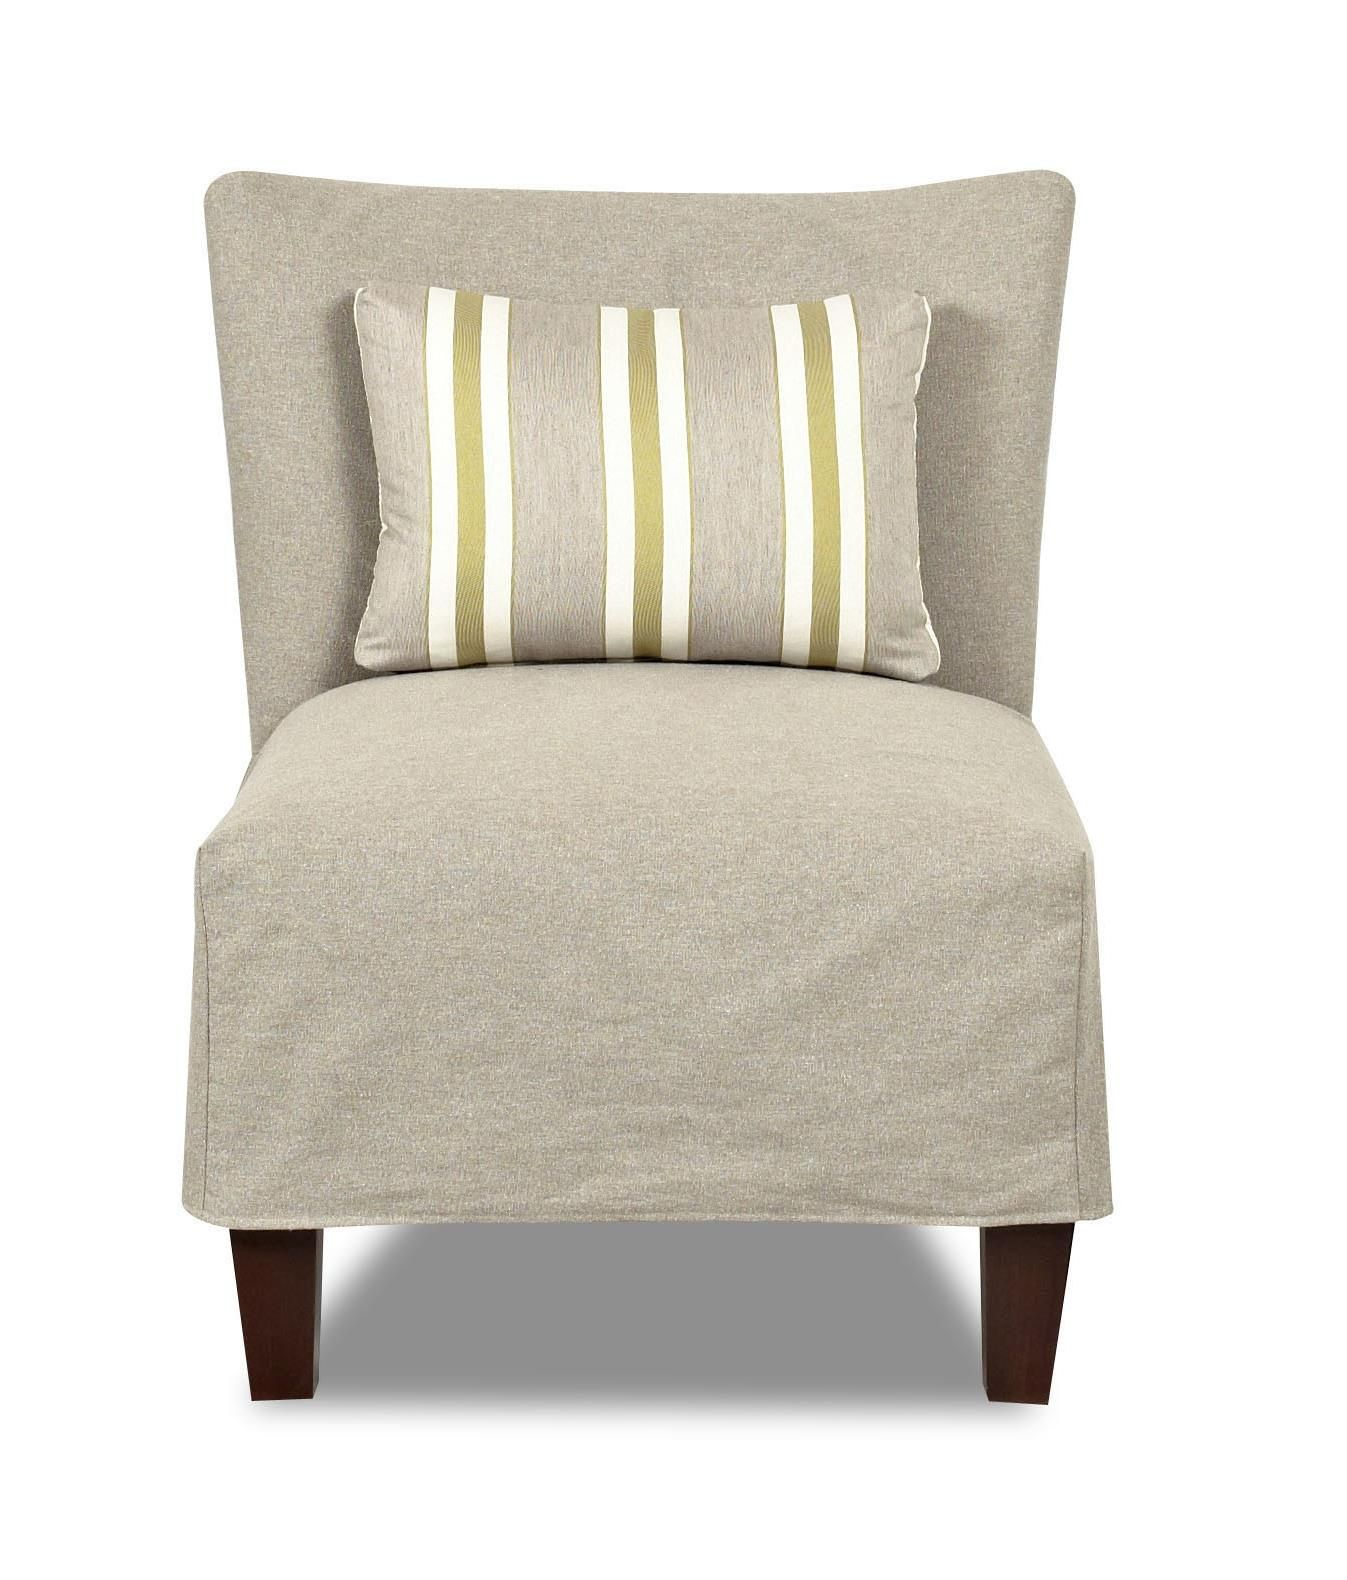 Chairs and Accents Armless Chair by Klaussner Slipcovers